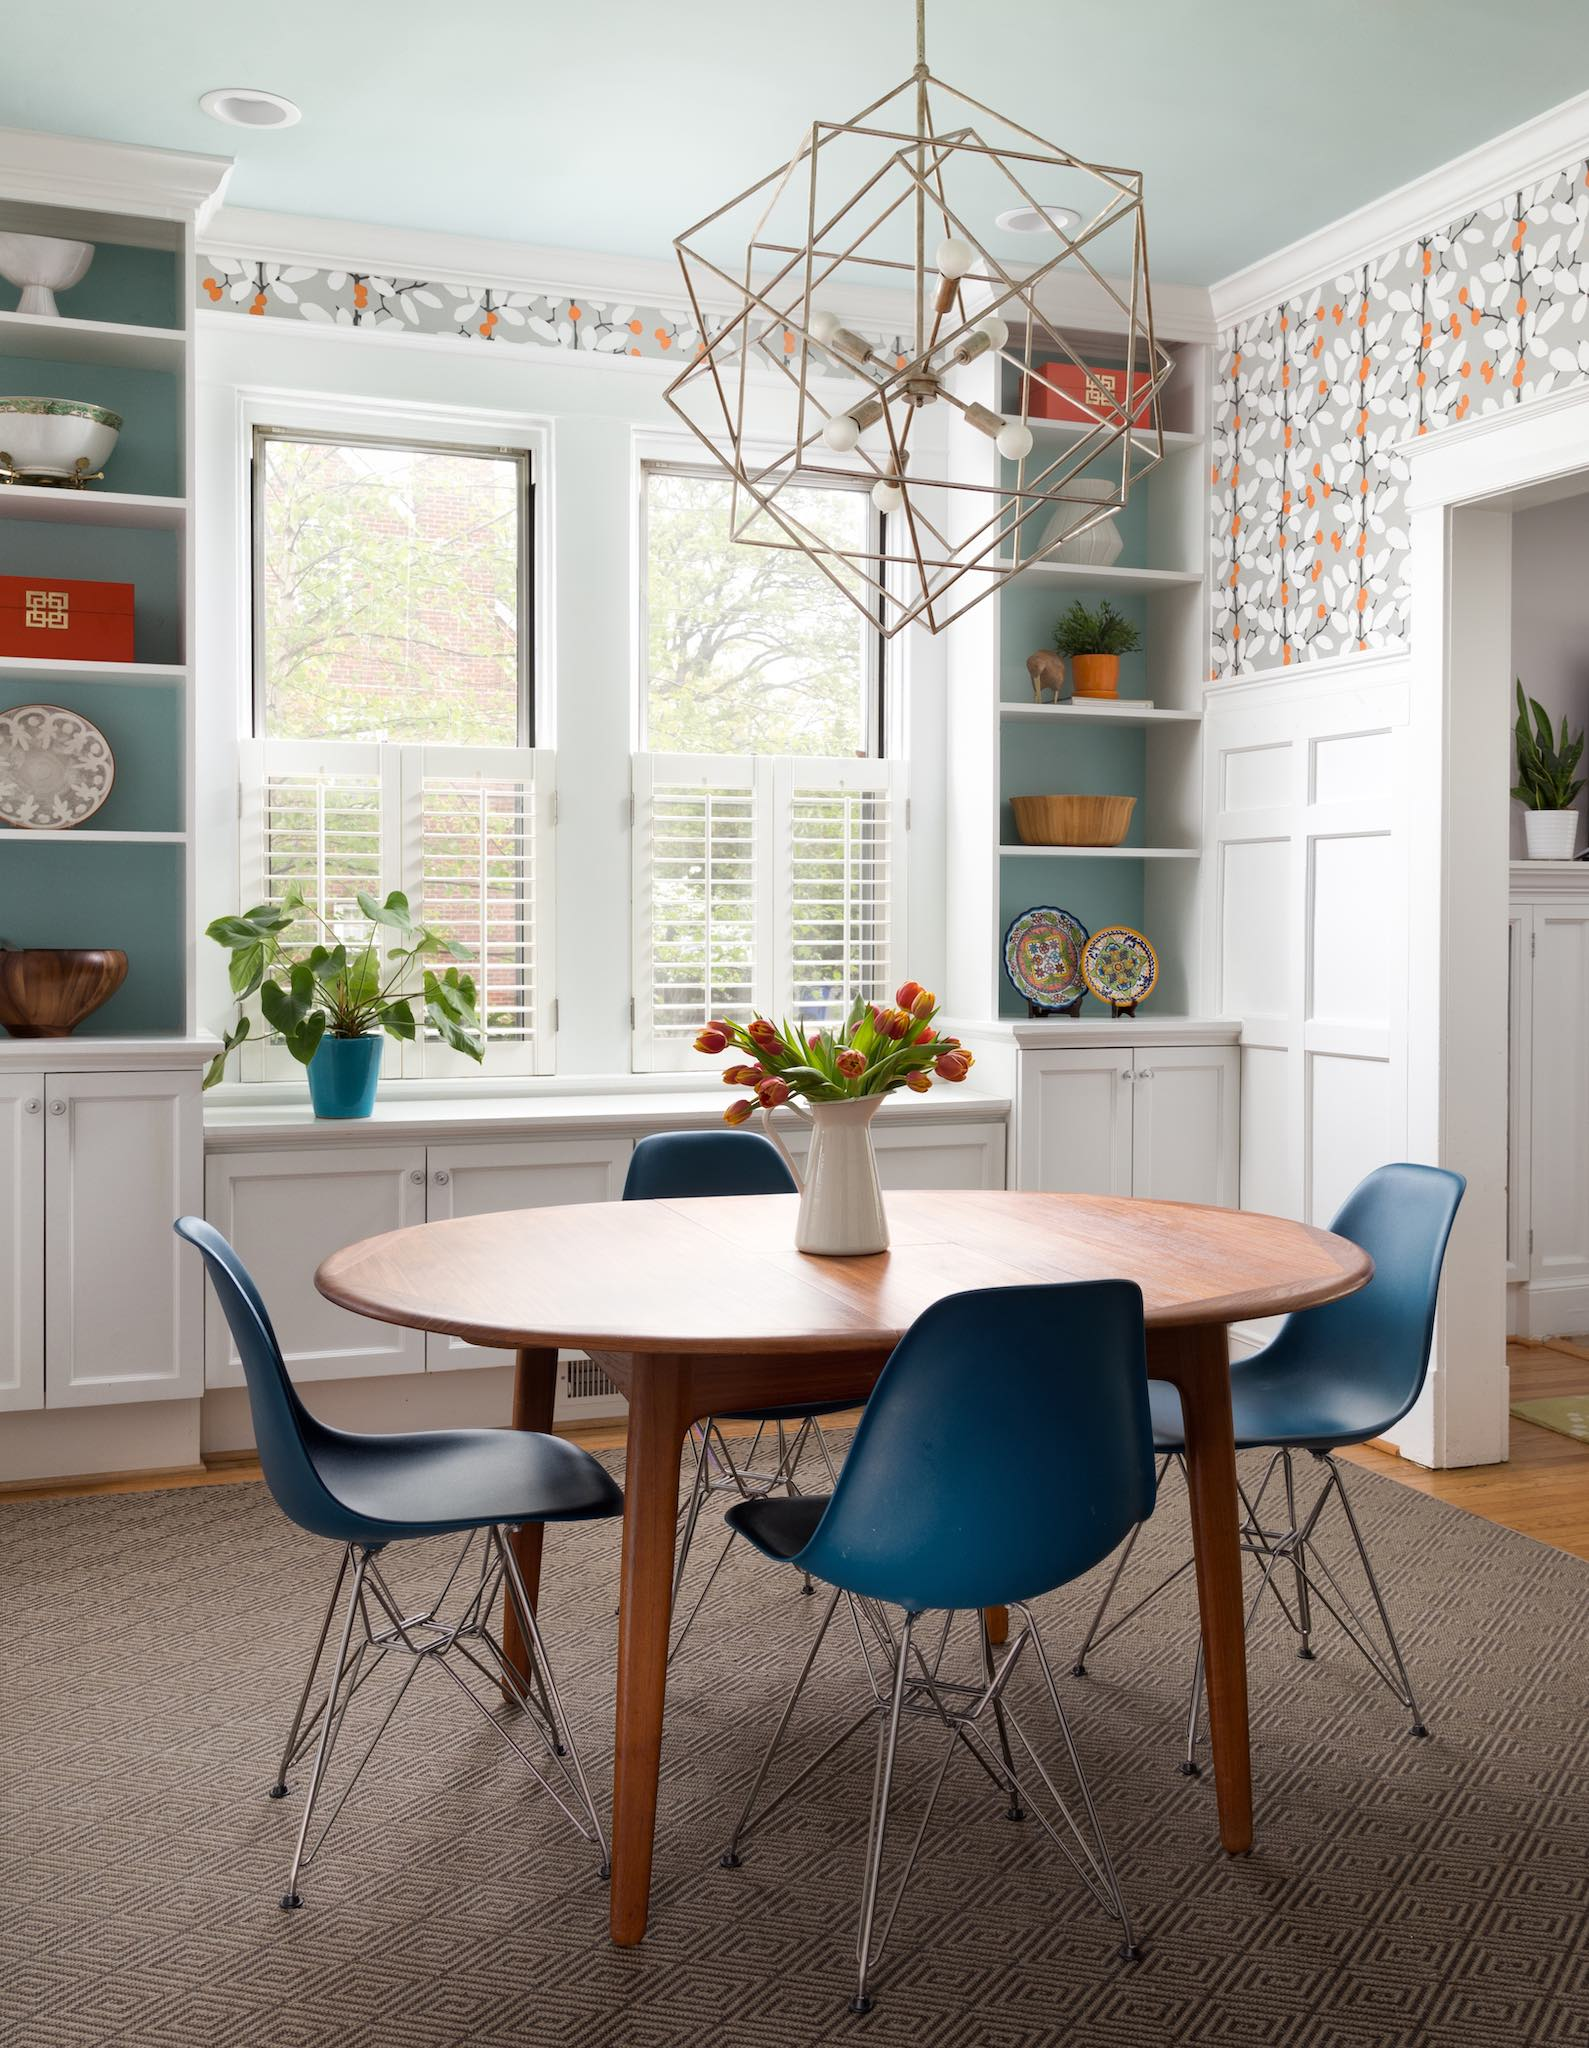 Playful_Dining_Room_AHI2.jpg